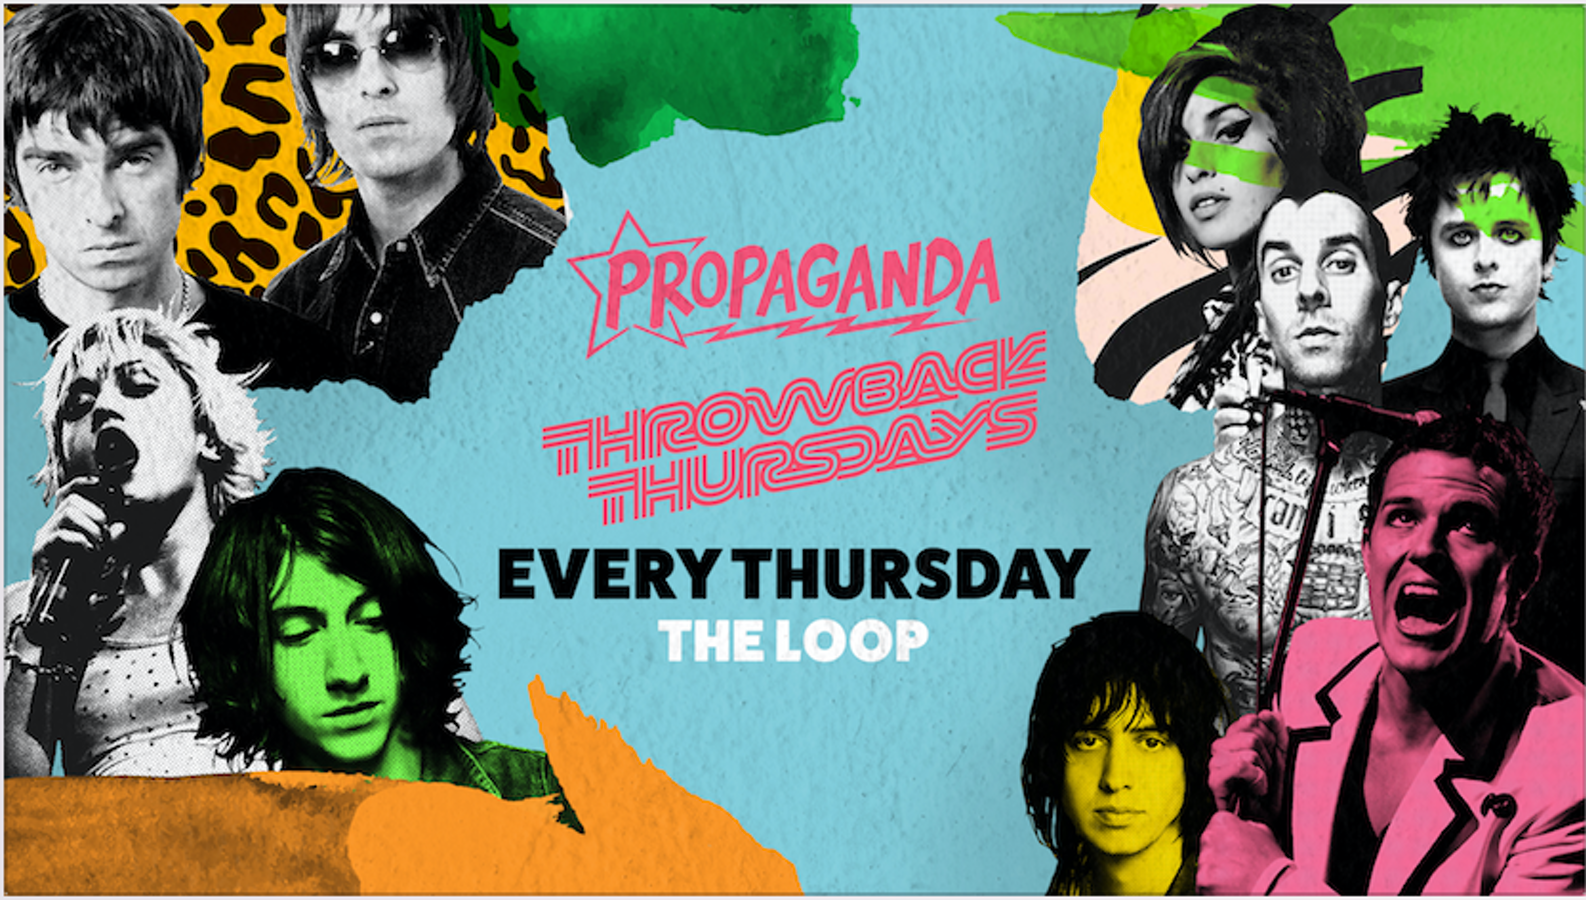 Propaganda – Throwback Thursdays